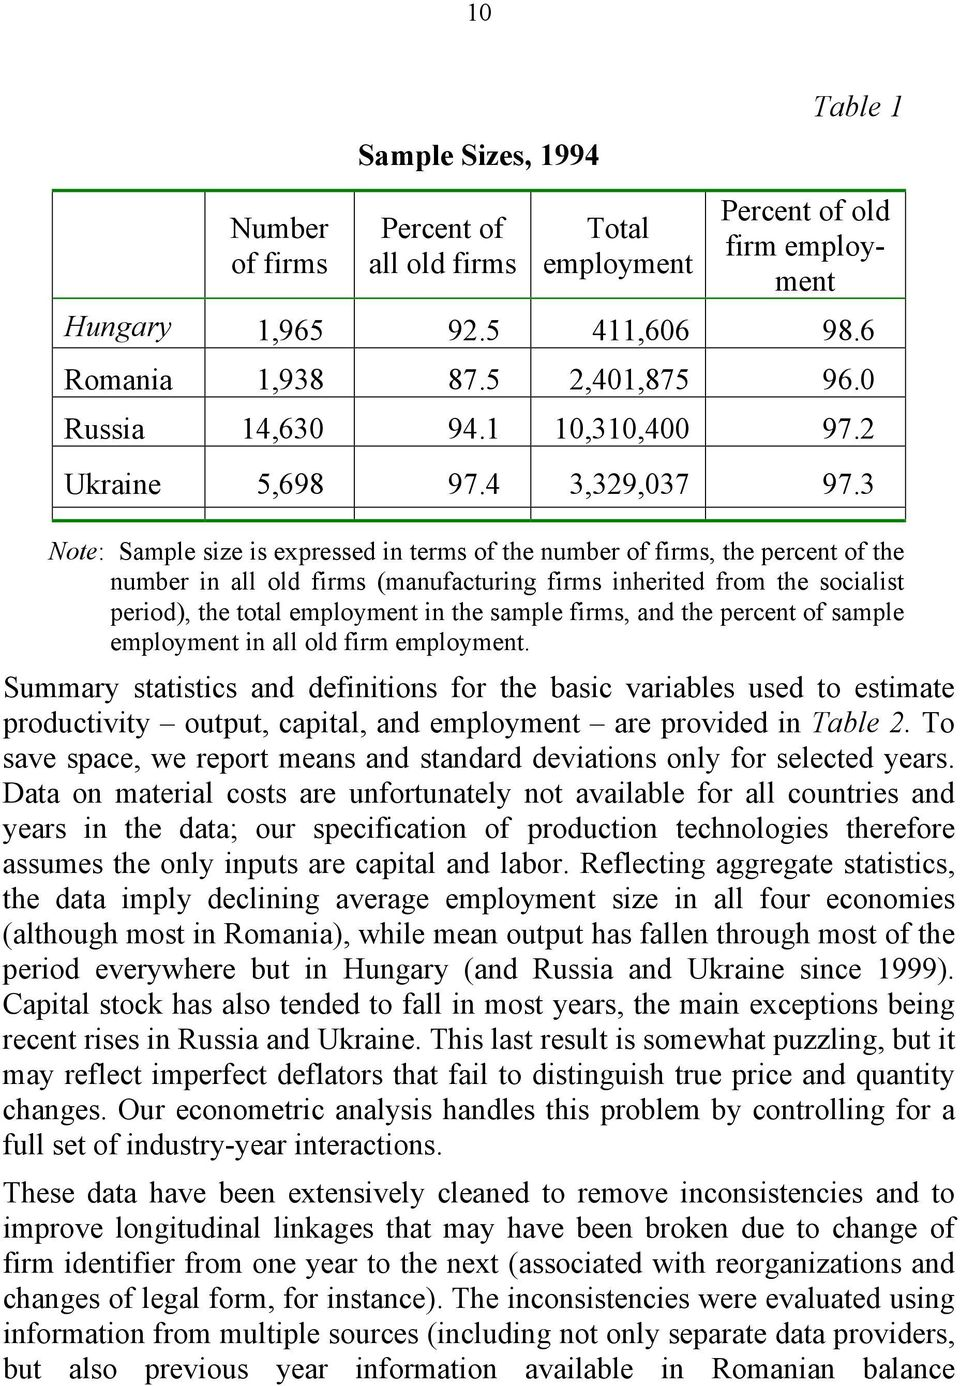 3 Note: Sample size is expressed in terms of the number of firms, the percent of the number in all old firms (manufacturing firms inherited from the socialist period), the total employment in the